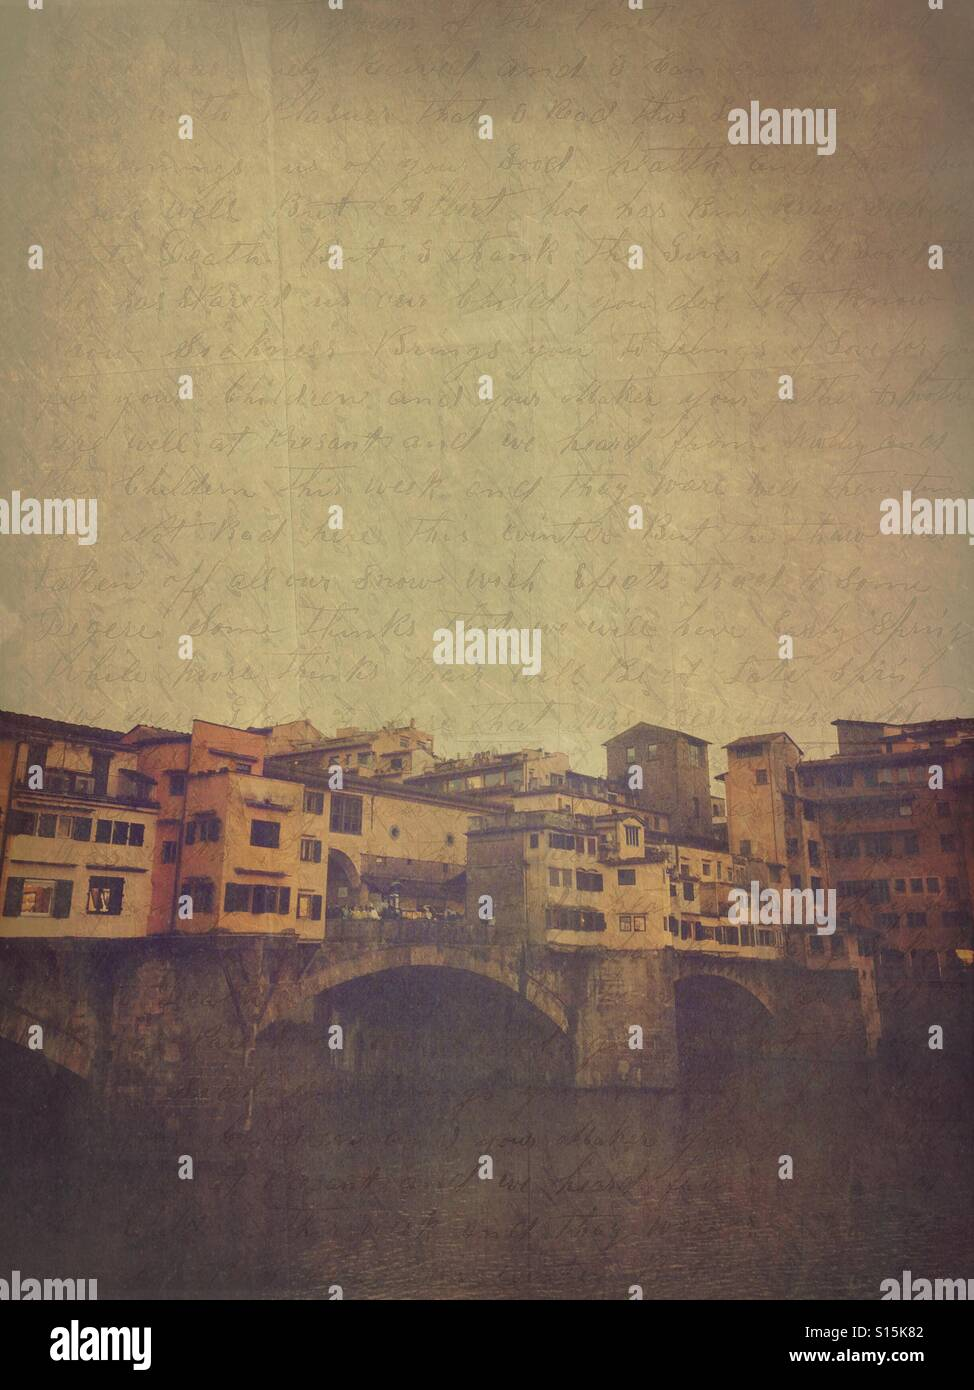 View of Ponte Vecchio bridge in Florence, Italy. Cloudy, overcast day. Vintage handwritten calligraphy paper overlay. Stock Photo